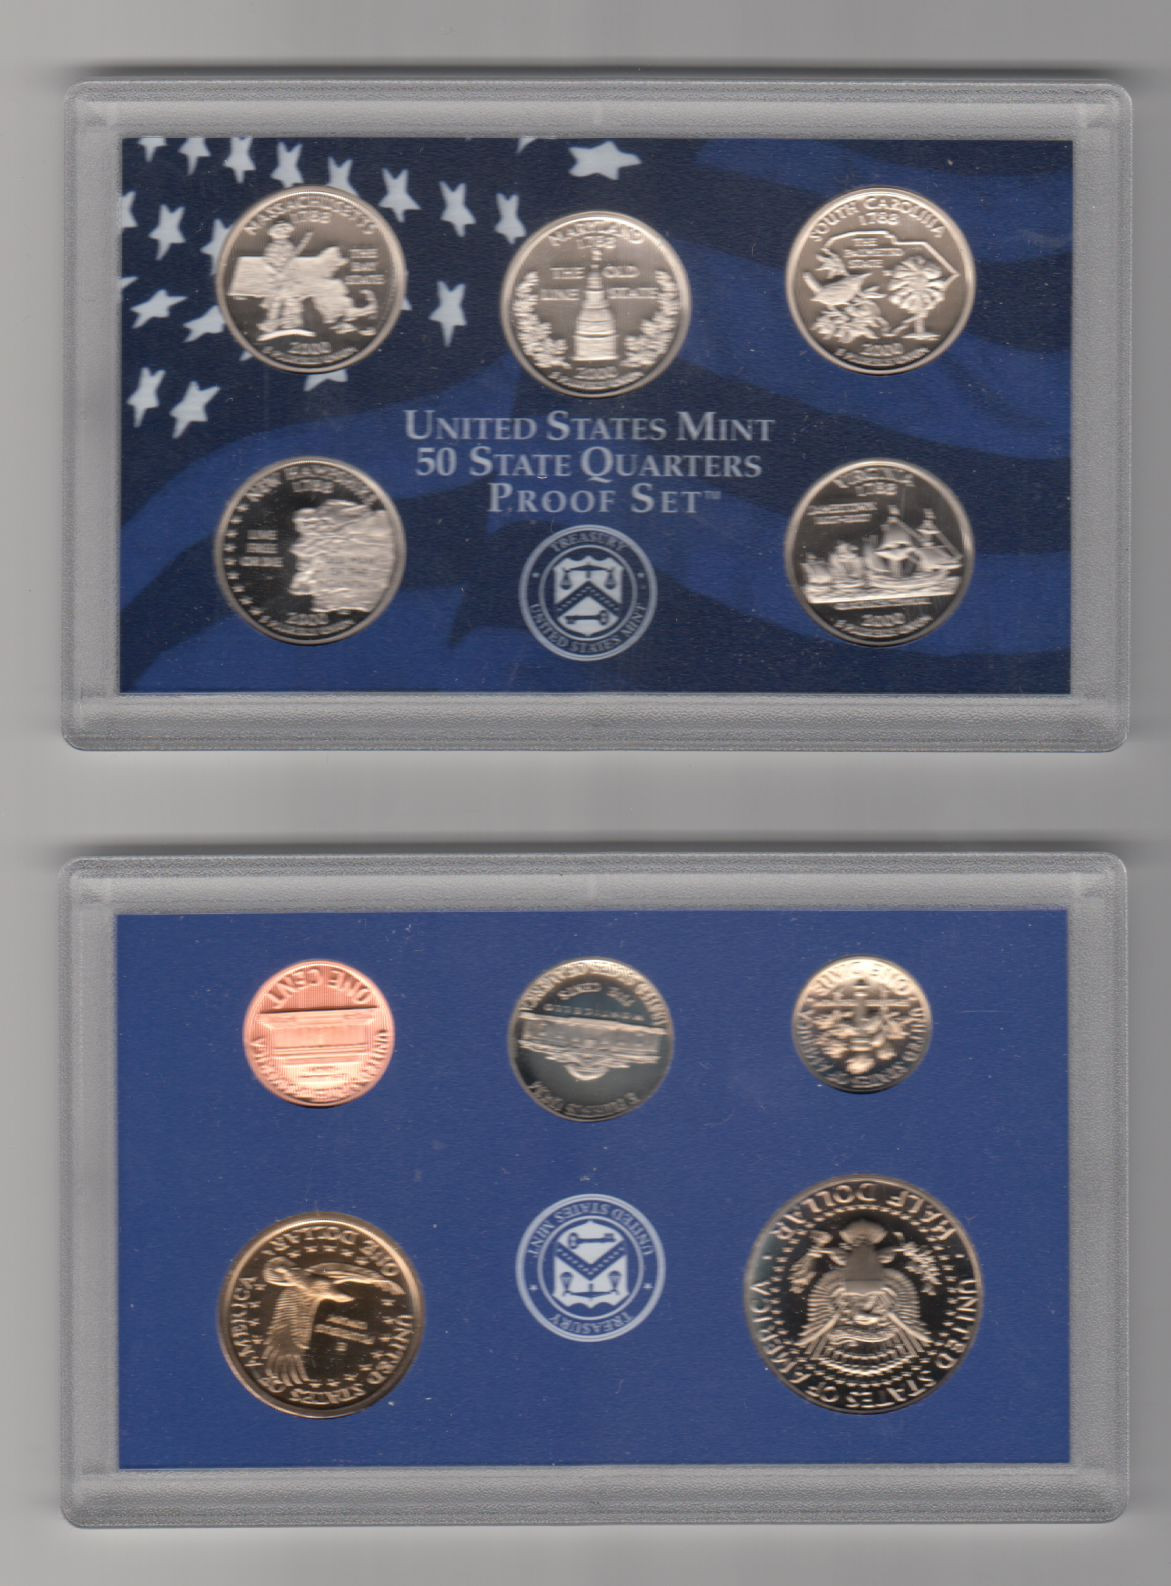 Awesome 10 Coins 50 State Quarters Proof Set Us Mint 2000 State Quarter Set Value Of Luxury Mint Statehood Quarter Errors State Quarter Set Value